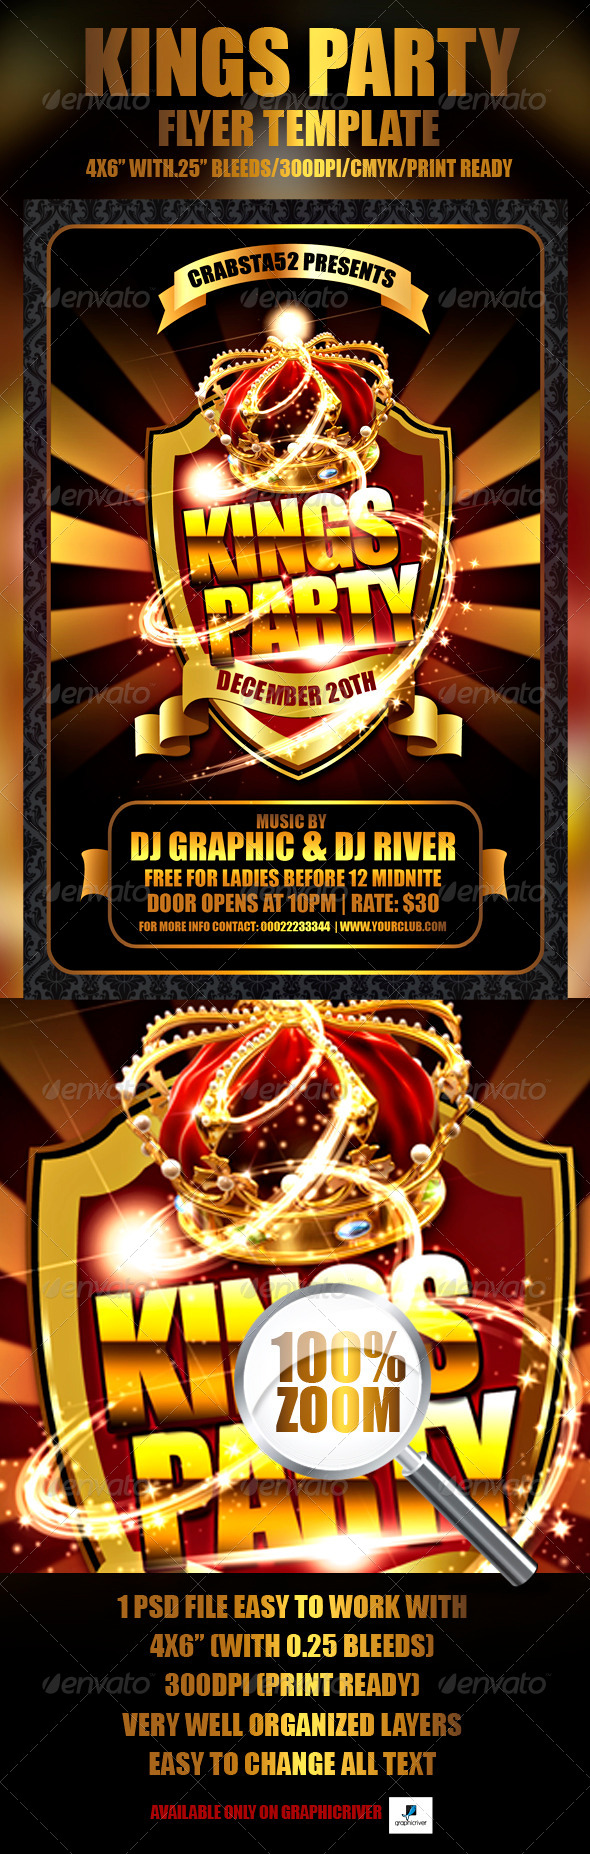 Kings Party Flyer Template - Clubs & Parties Events